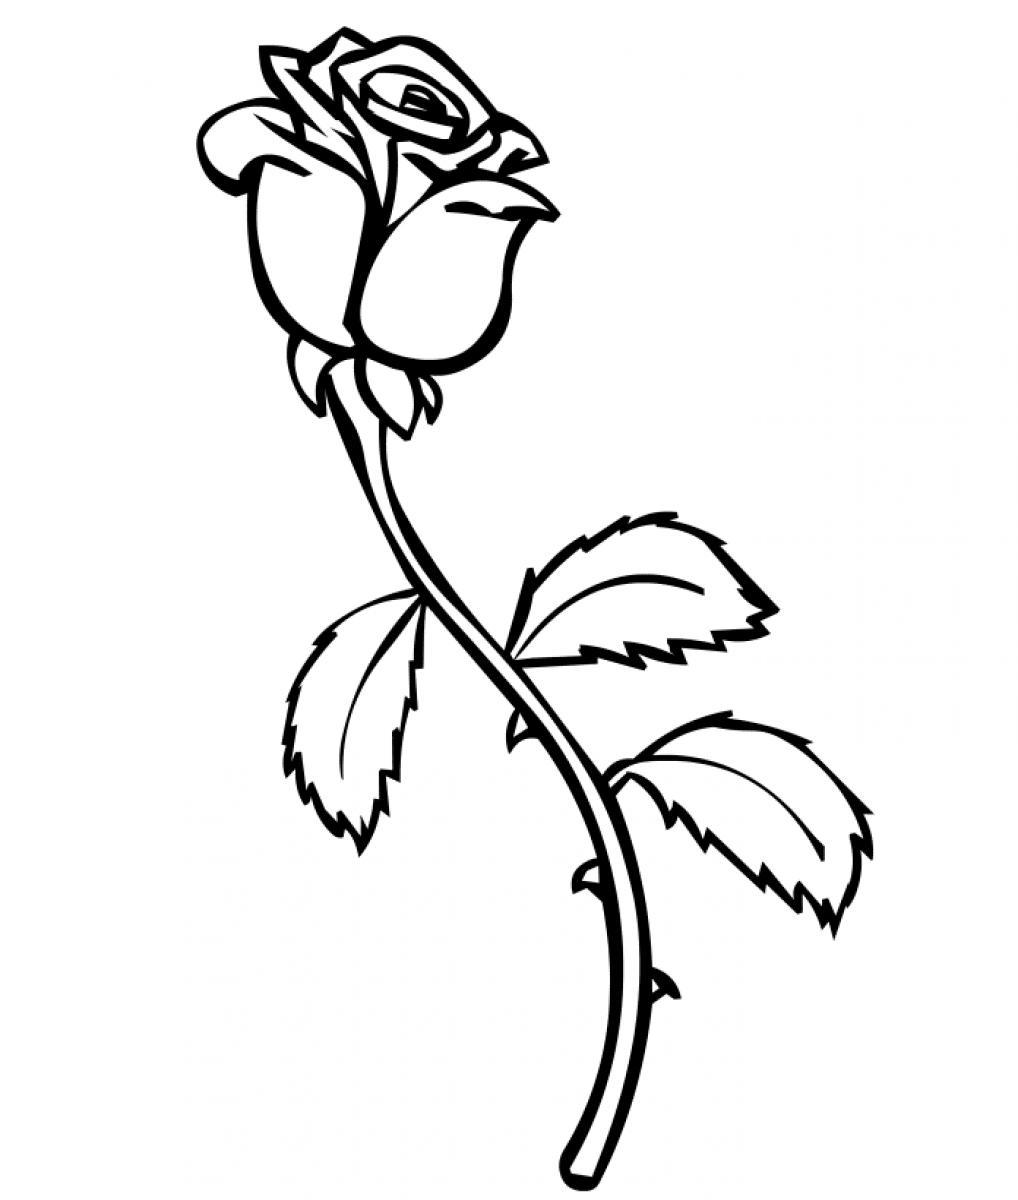 rose to color free printable roses coloring pages for kids to rose color 1 3